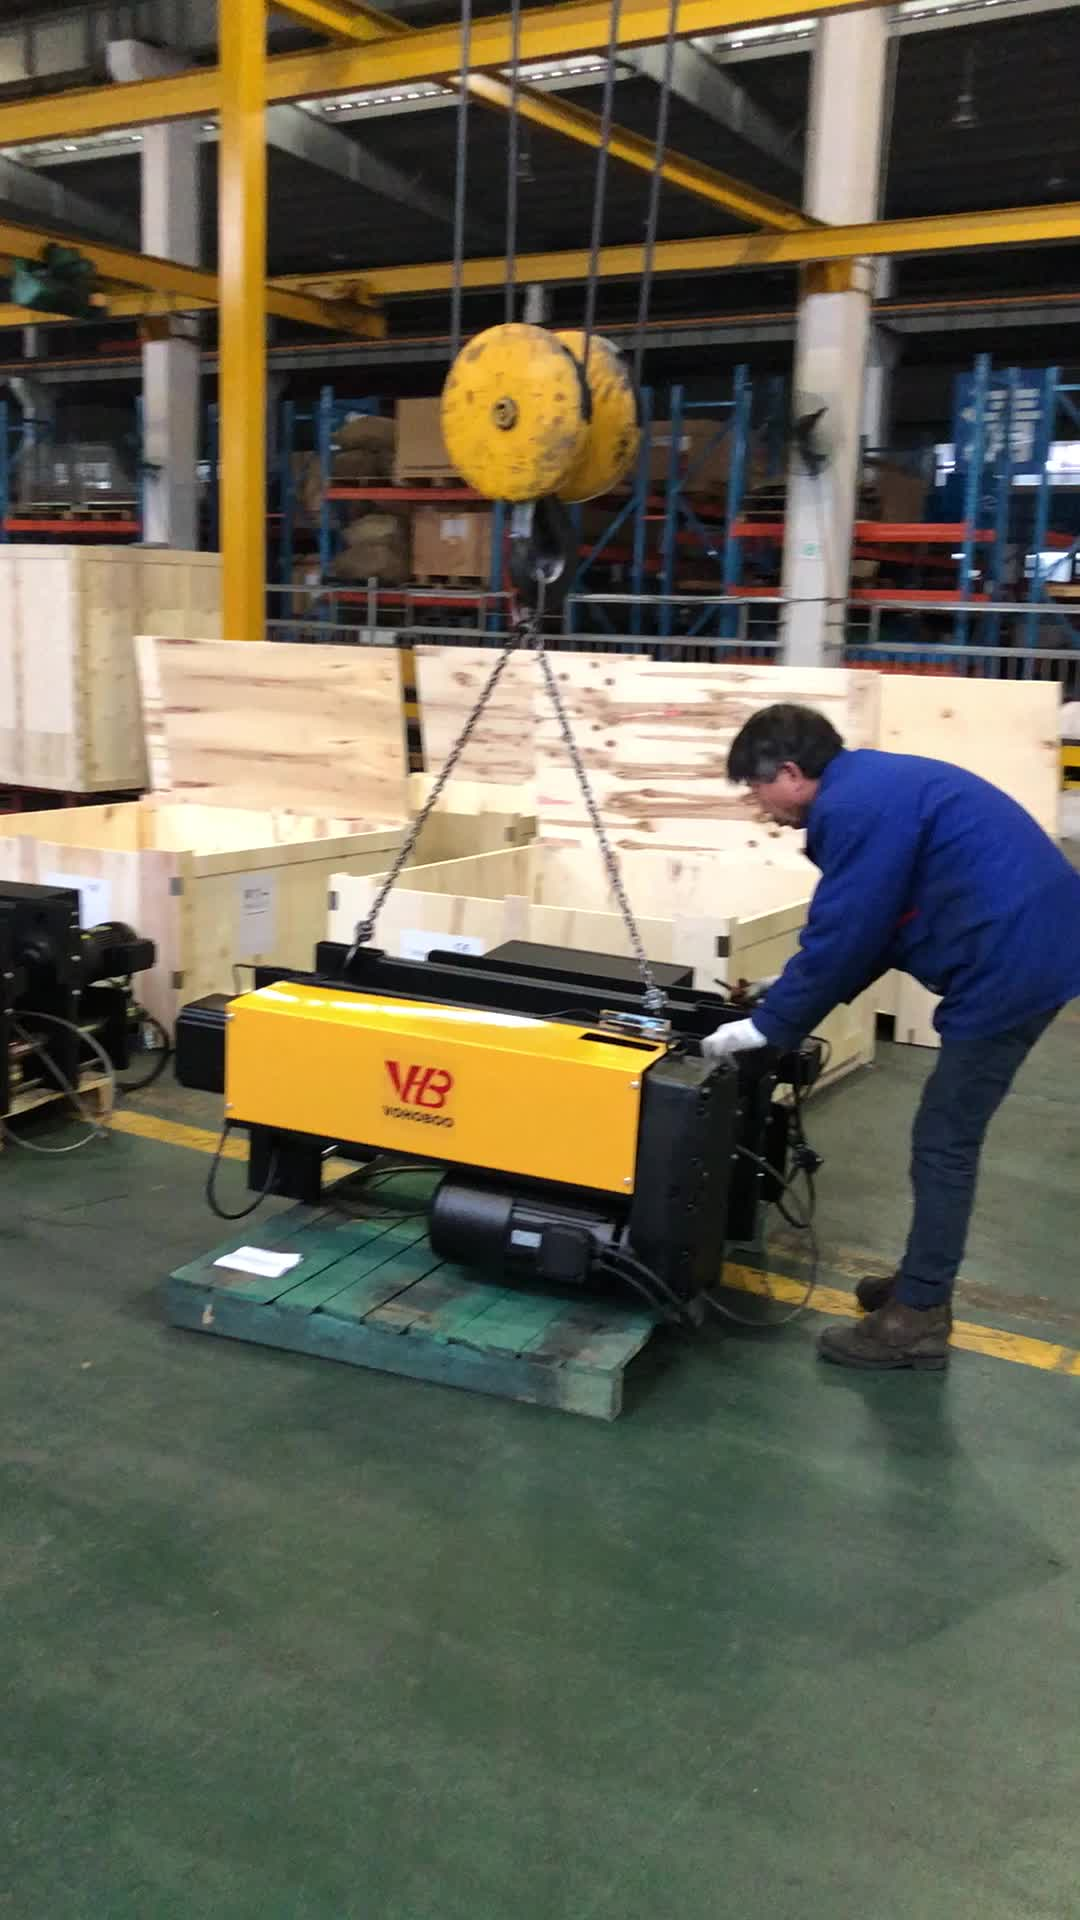 380V 50HZ 3phase Material handling Tools European Electric Wire Rope Hoist for Lifting